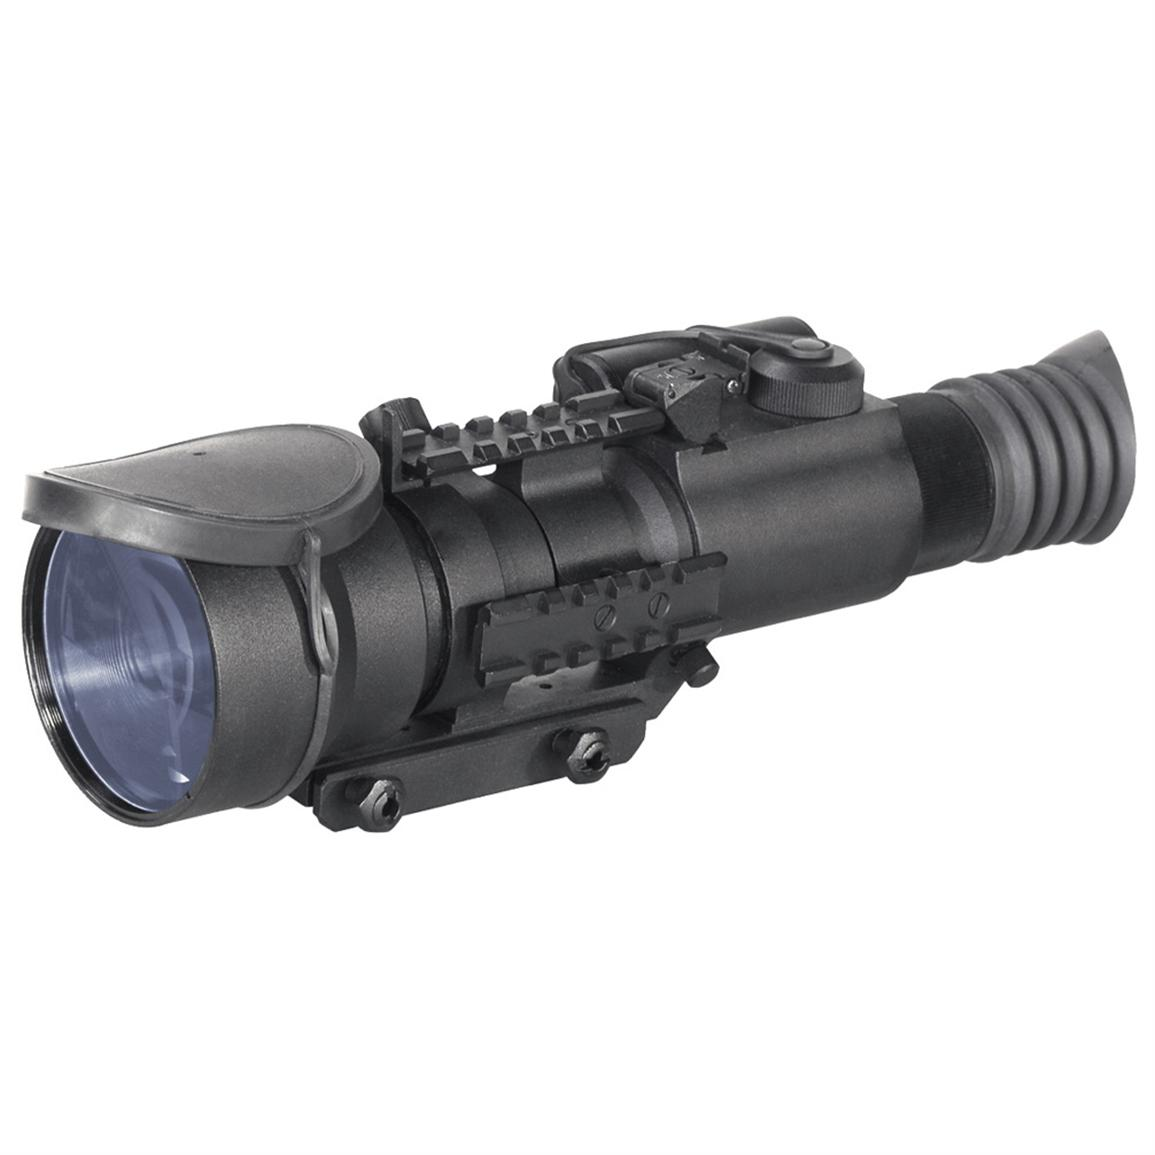 Armasight® Nemesis4 - SD Gen 2+ Night Vision Riflescope